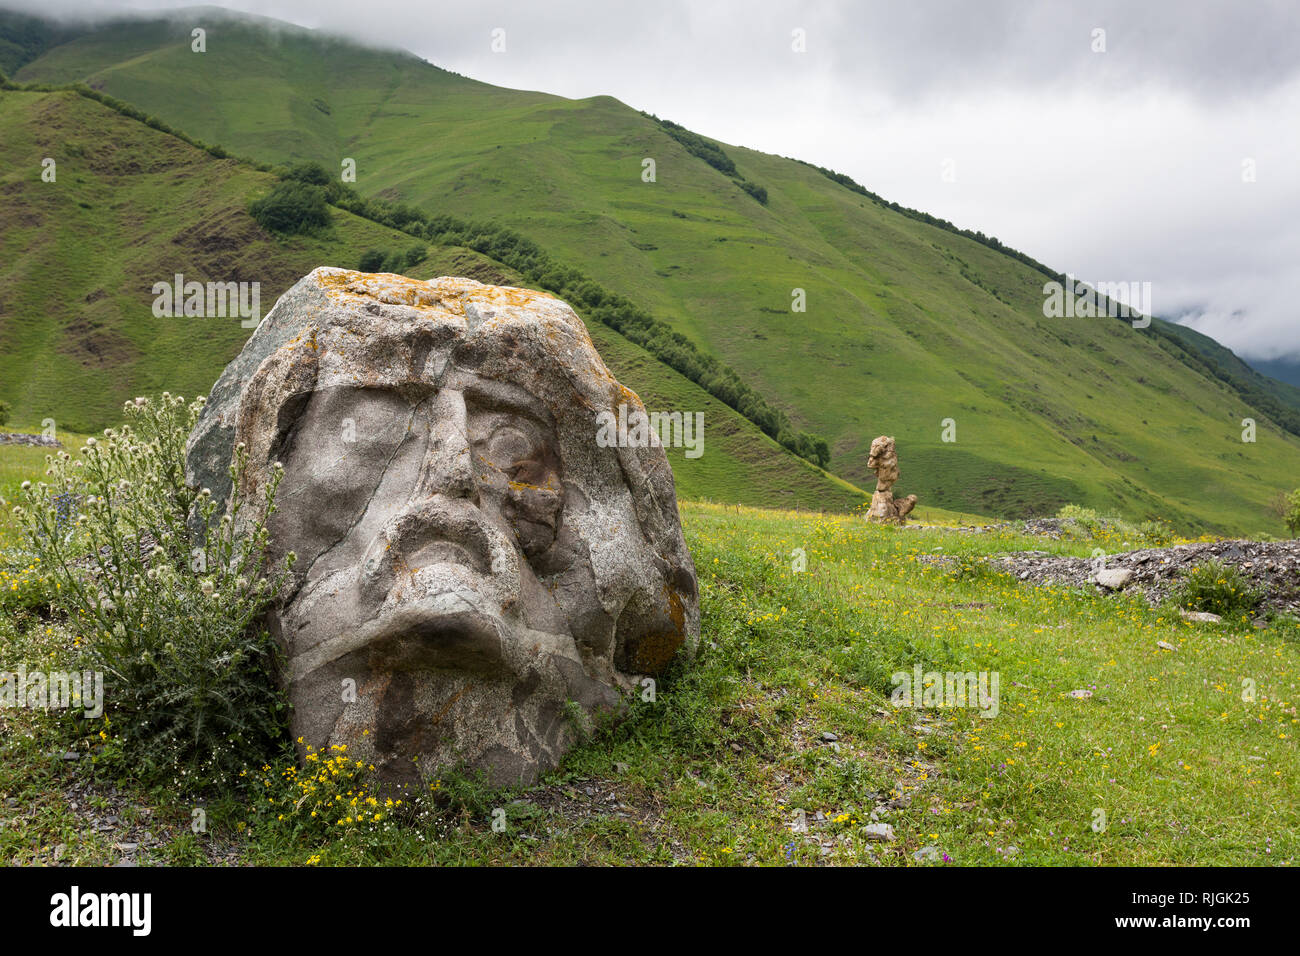 Giant sculptures of famous Georgian minds in the valley of Sno - Stock Image